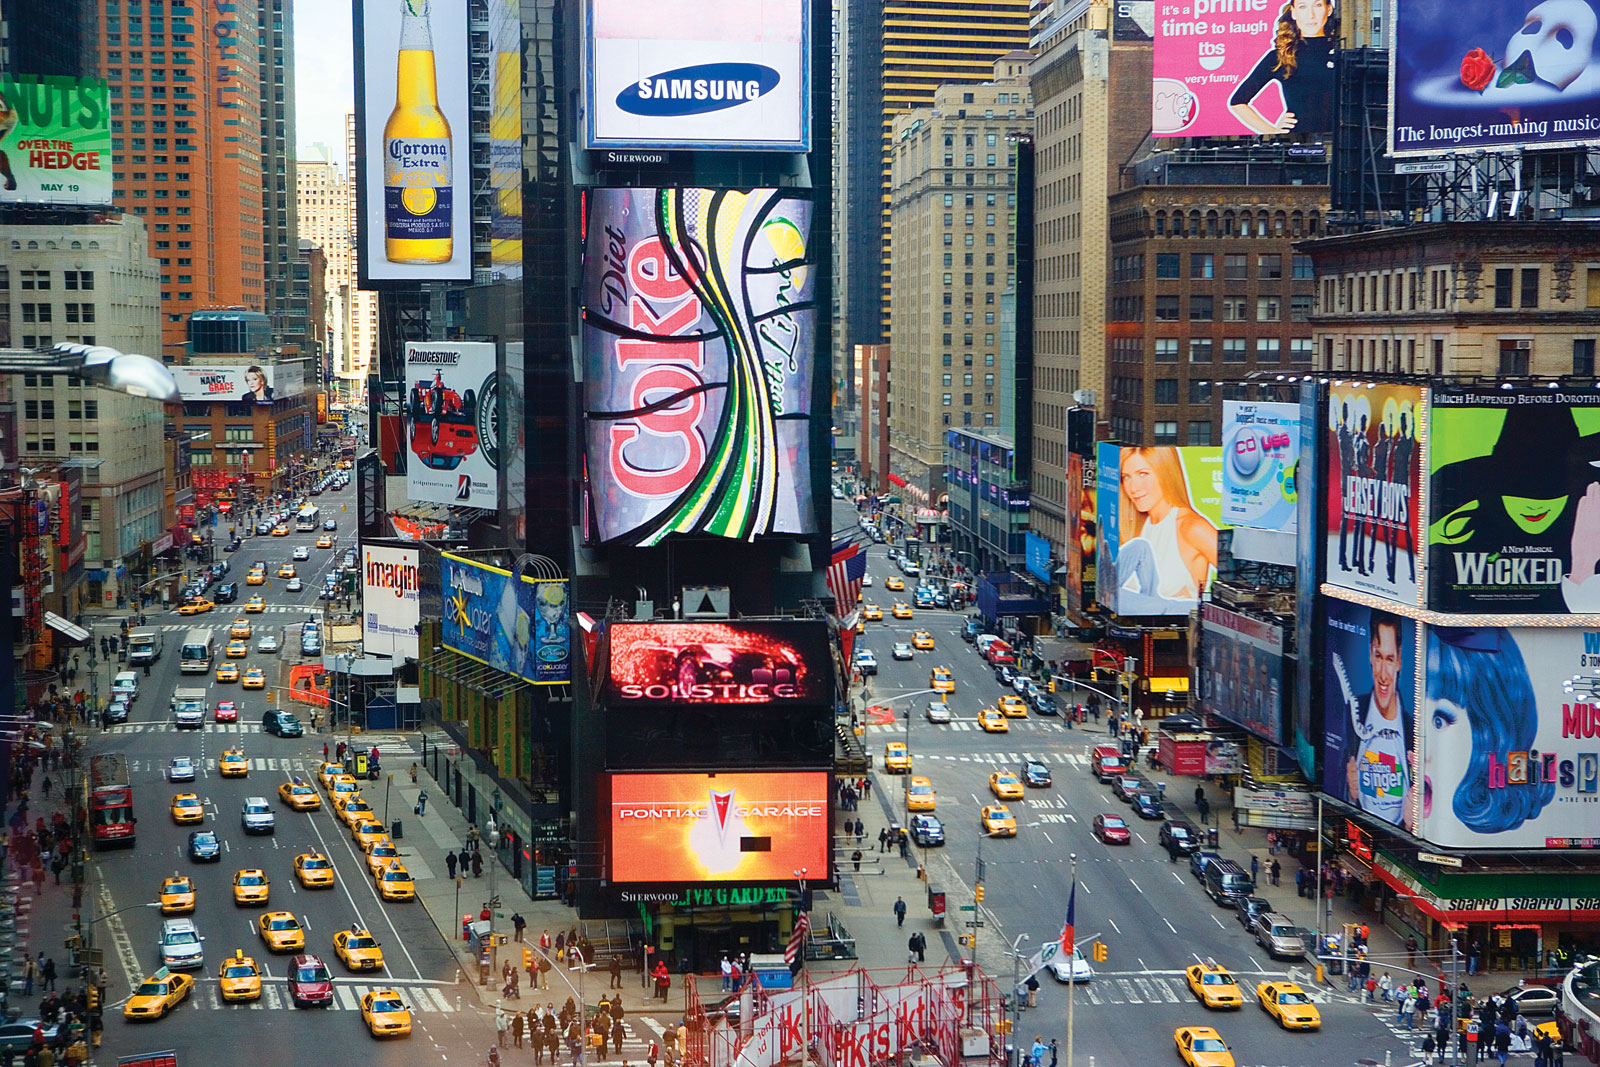 30:03_ny_time square